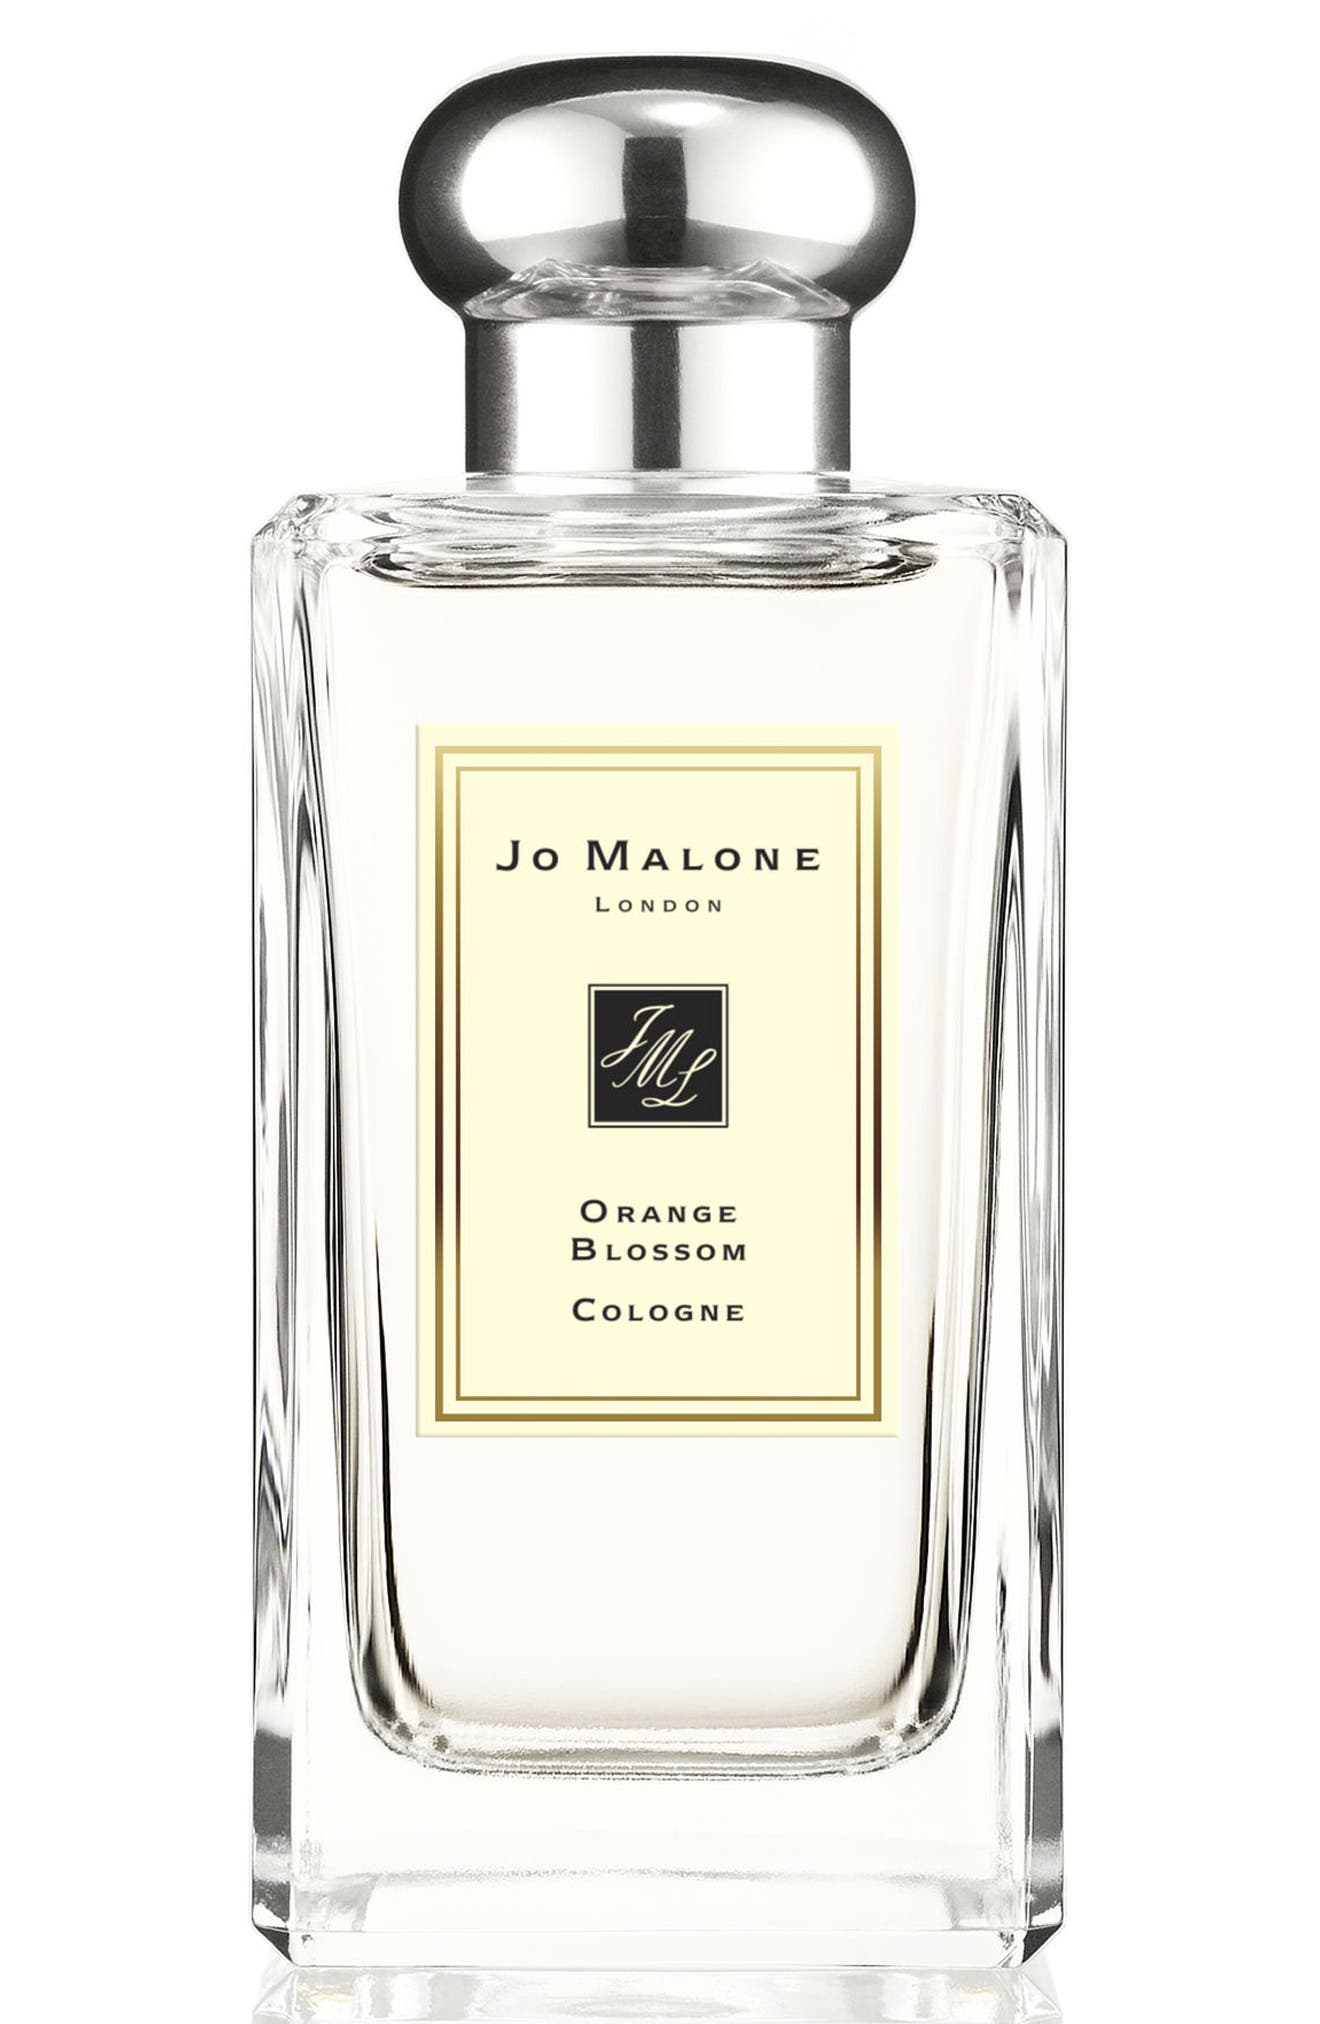 Jo Malone London™ Orange Blossom Cologne (3.4 oz.)